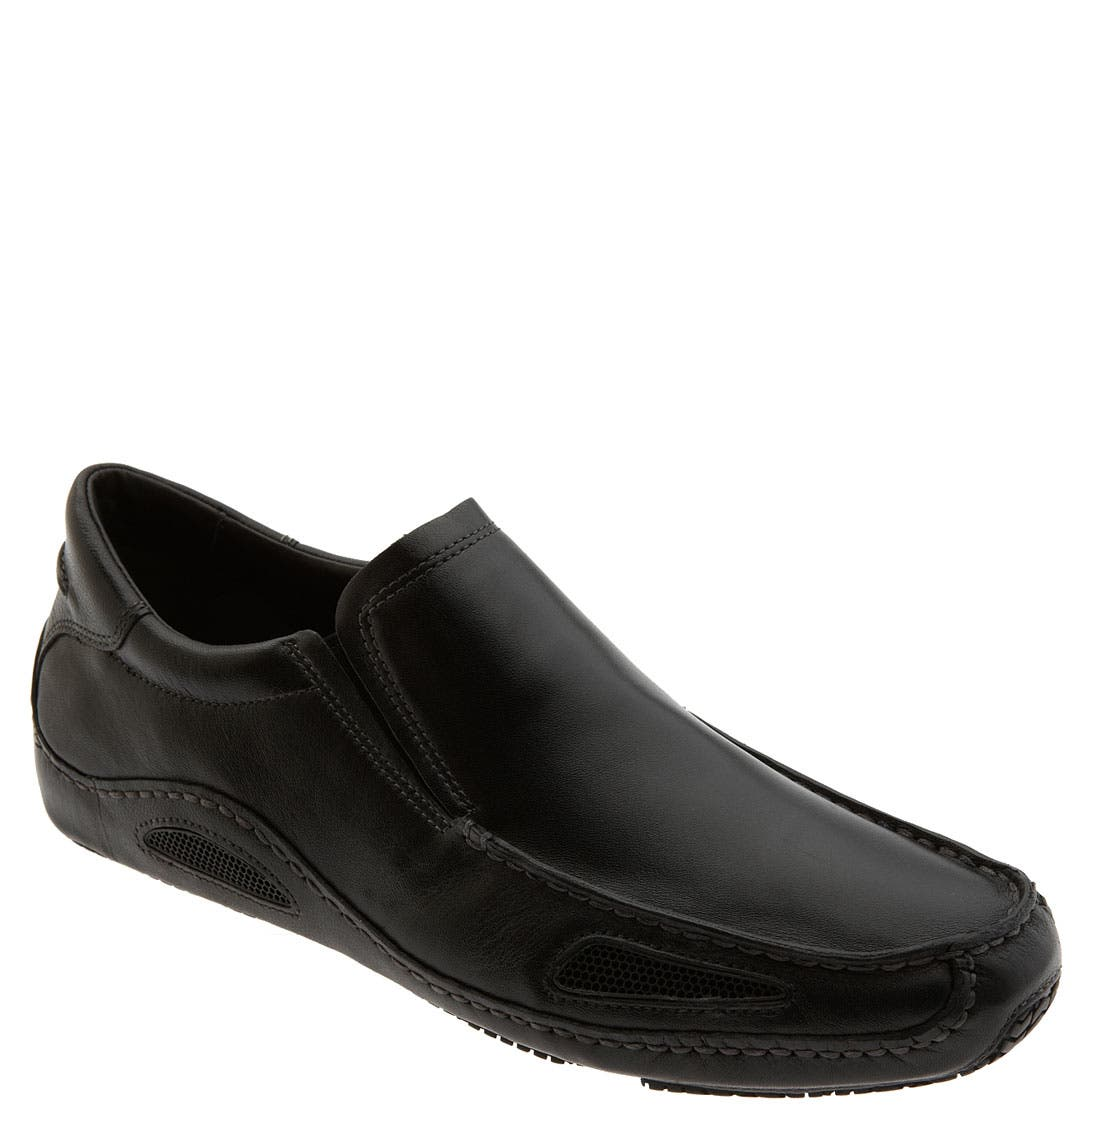 Alternate Image 1 Selected - Cole Haan 'Air Ryder' Slip-On